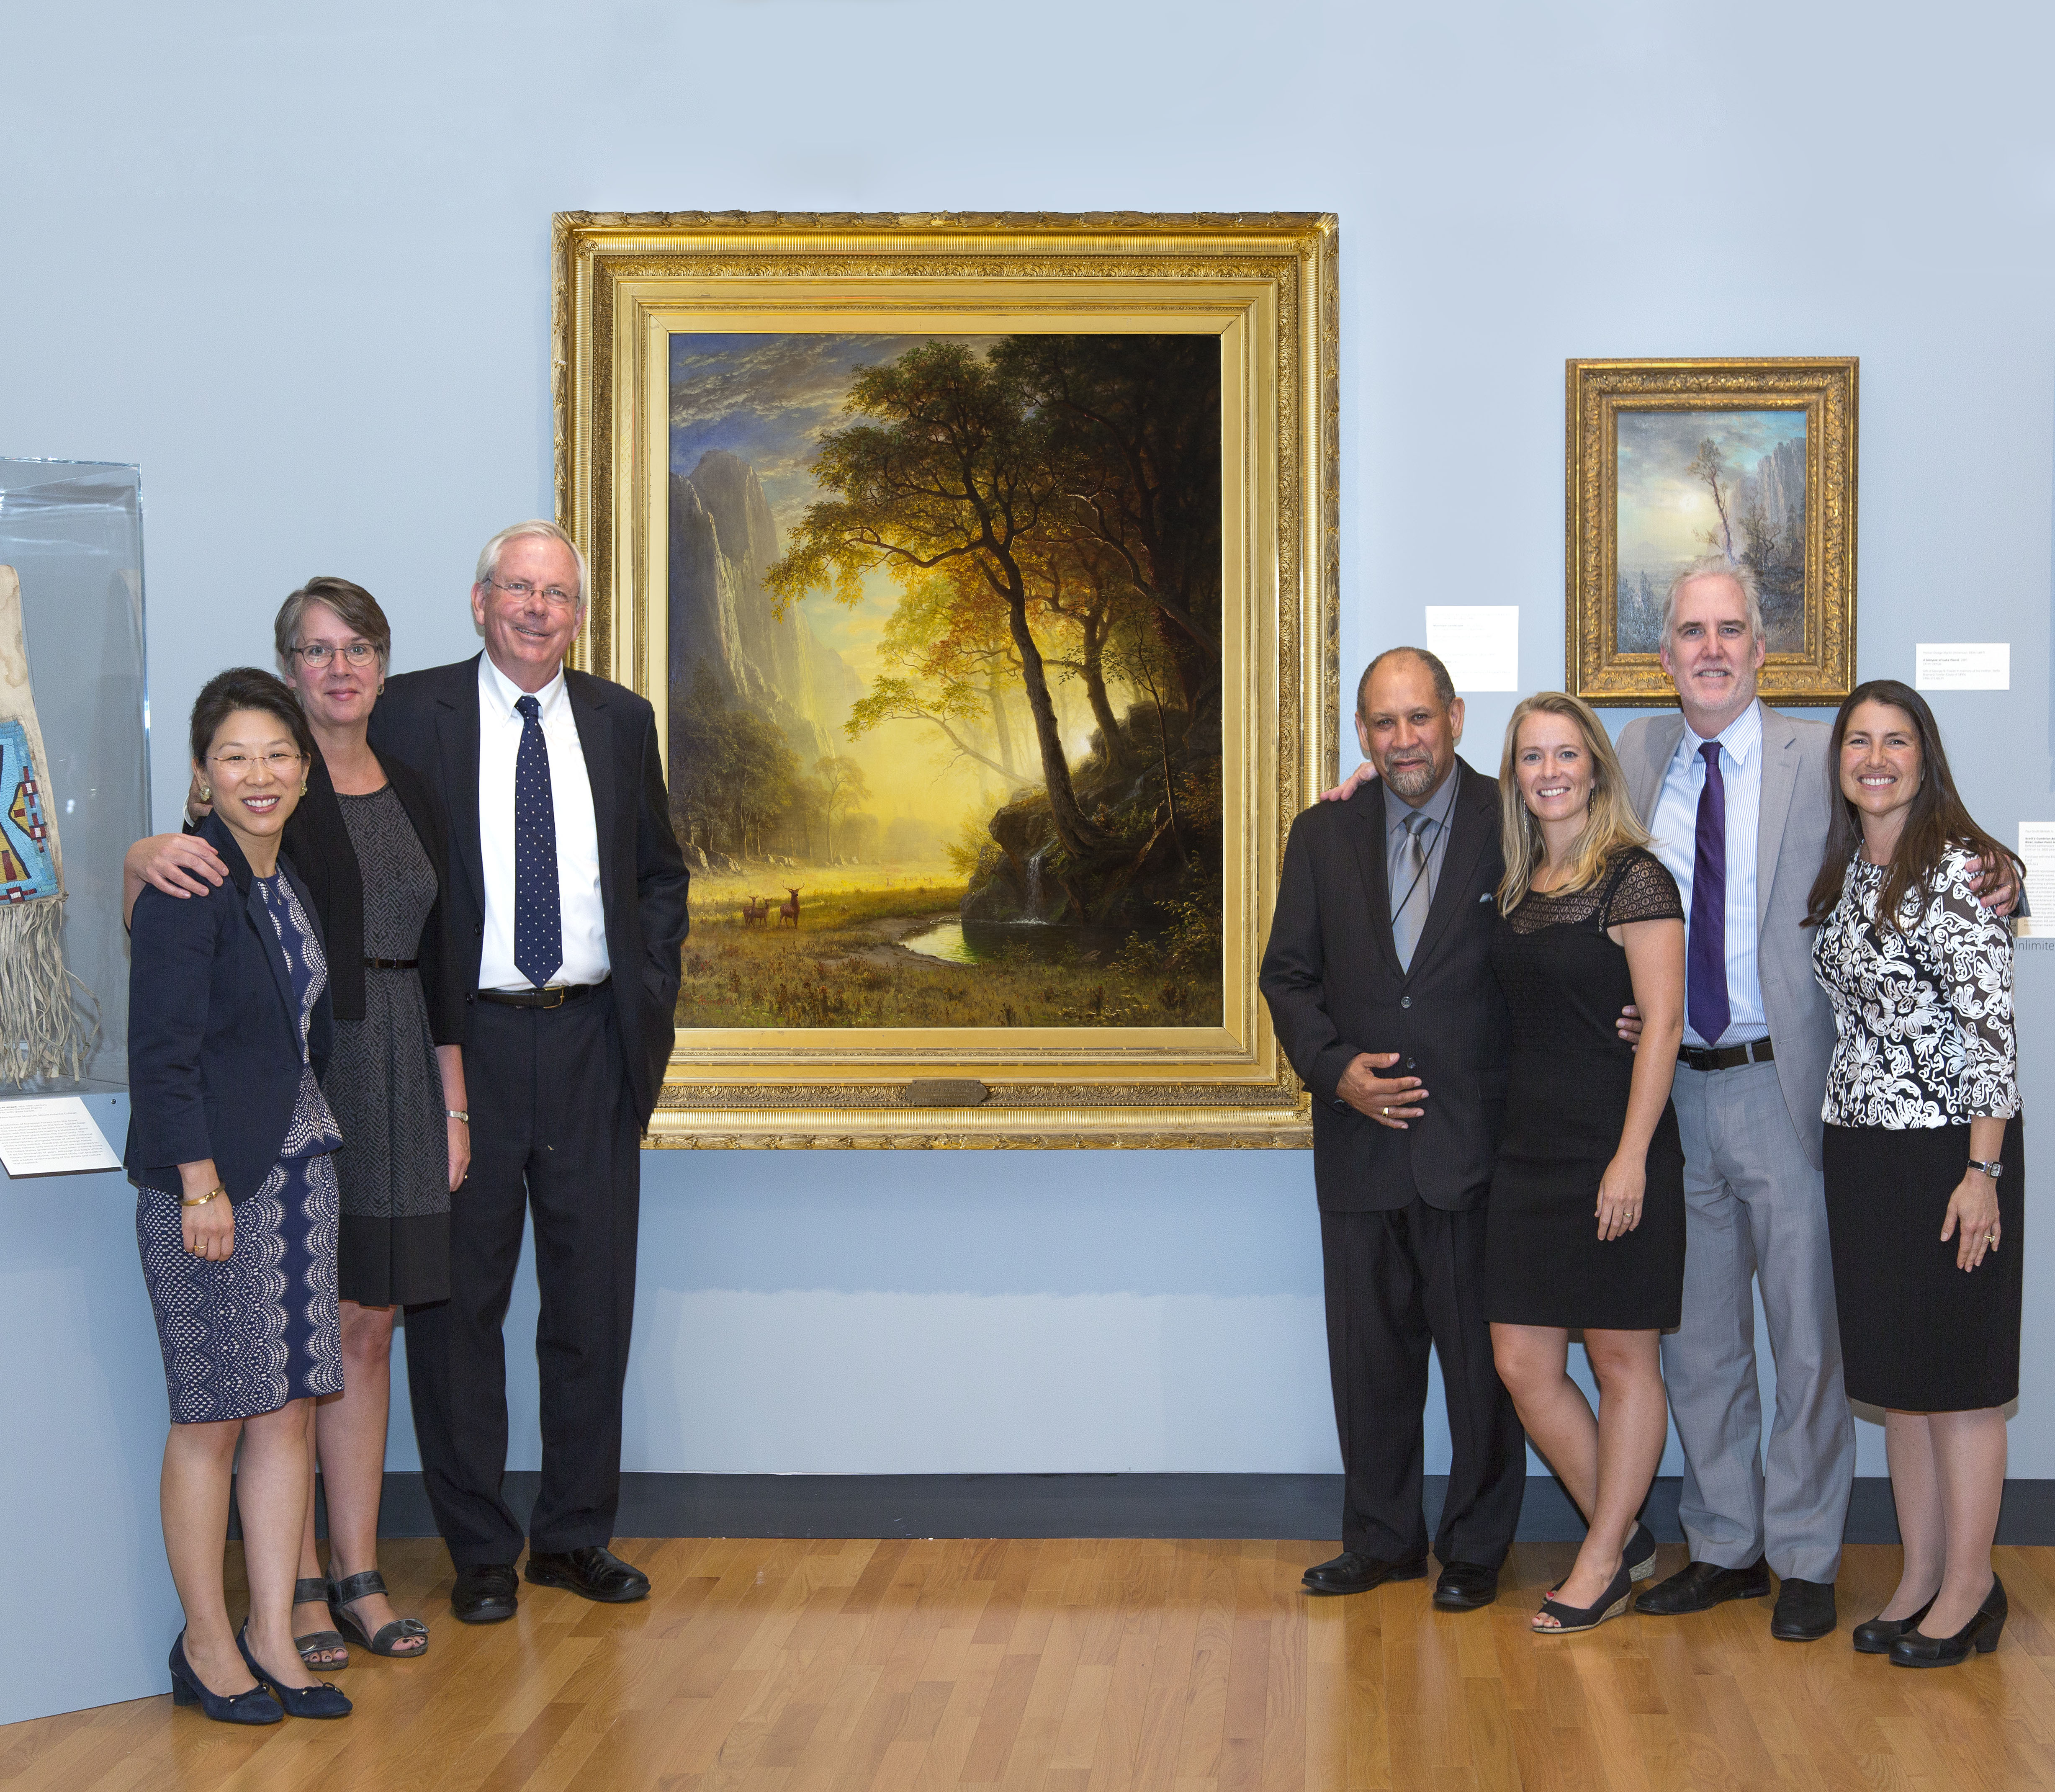 Jock Reynolds, The Henry J. Heinz II Director of the Yale University Art Gallery (third from left) with Five College museum directors